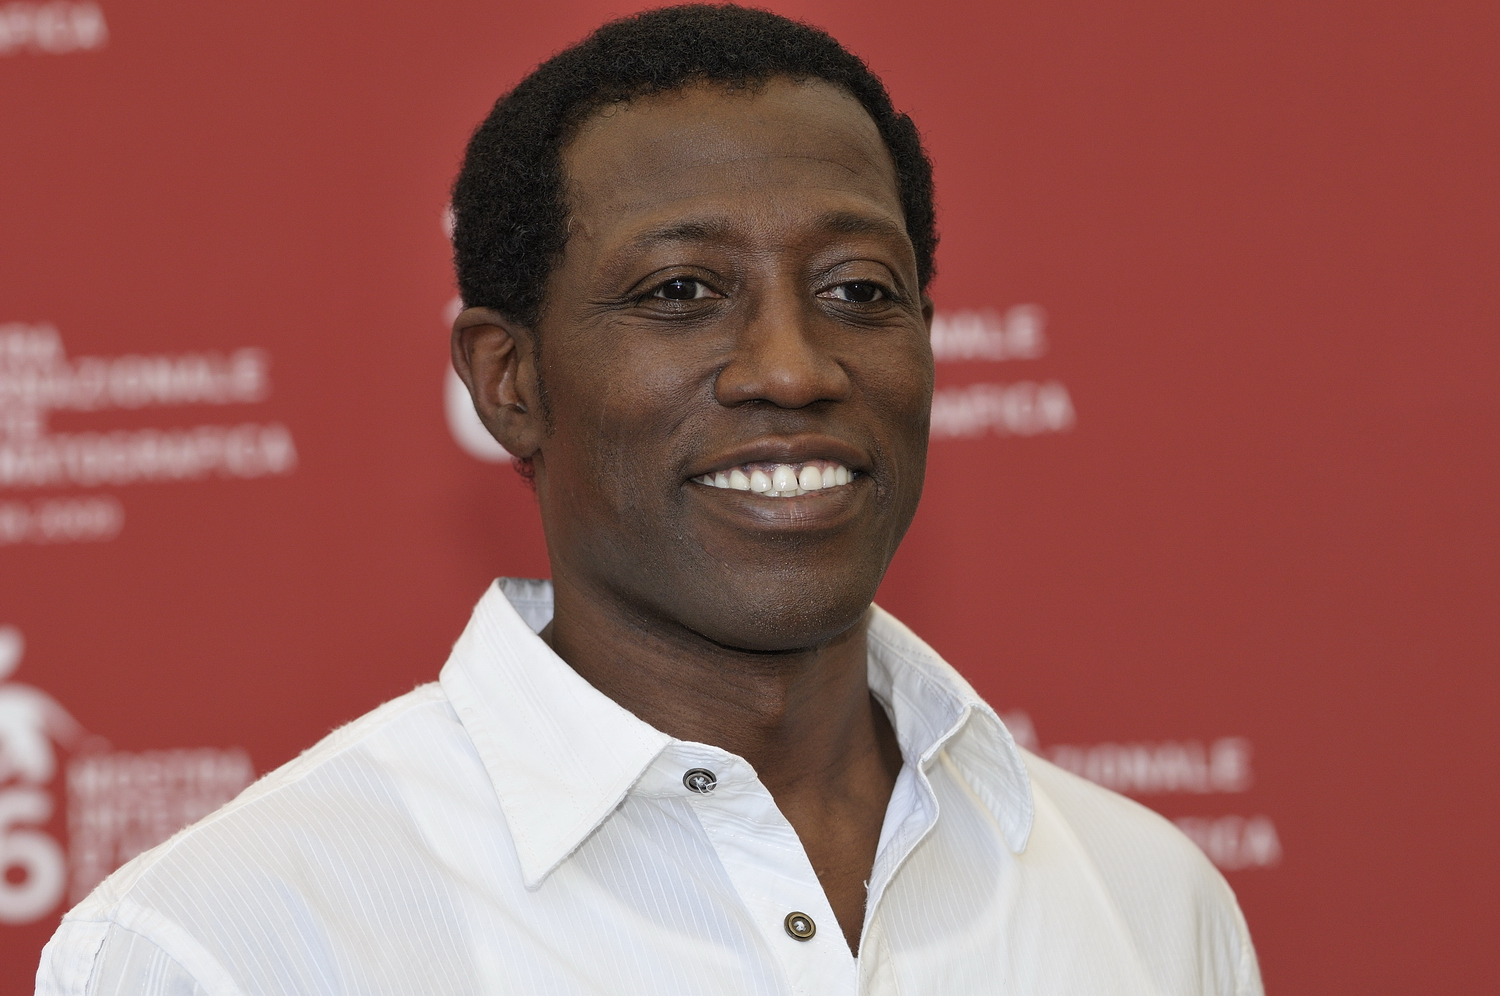 Wesley Snipes earned a  million dollar salary - leaving the net worth at 10 million in 2018